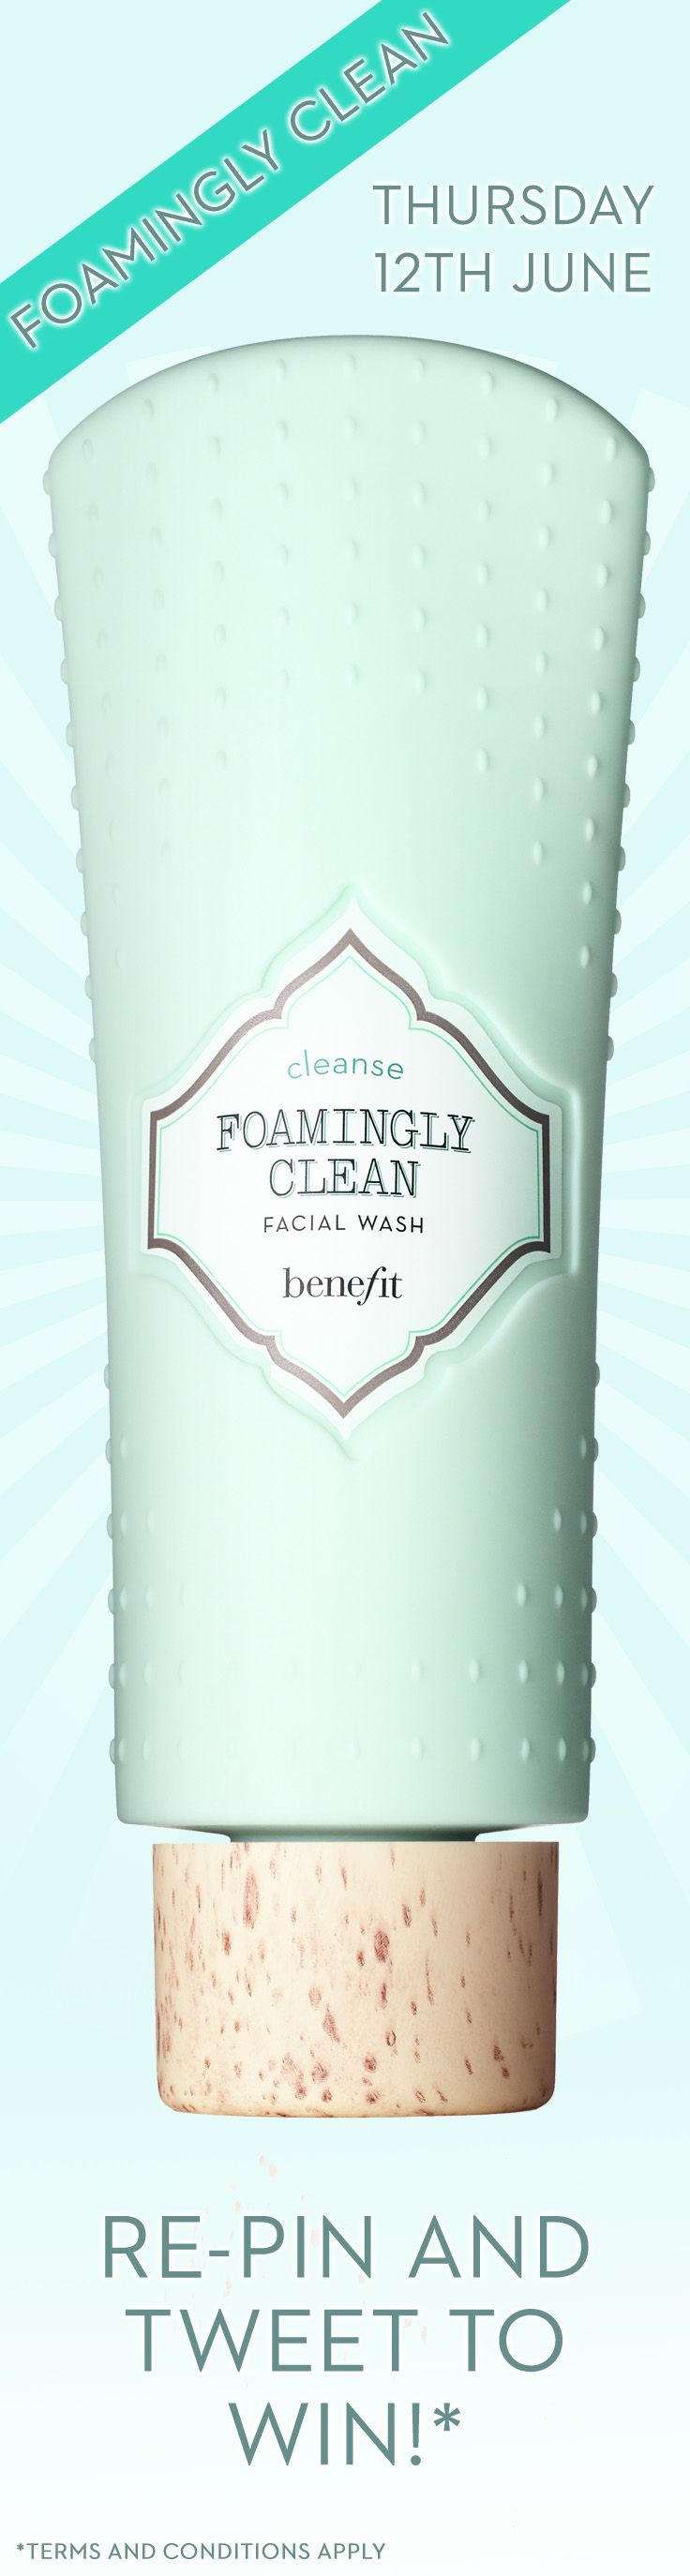 I'm in for a summer where #itsimplyworks with Benefit. Foamingly clean? Yes please! Repin for a chance to win